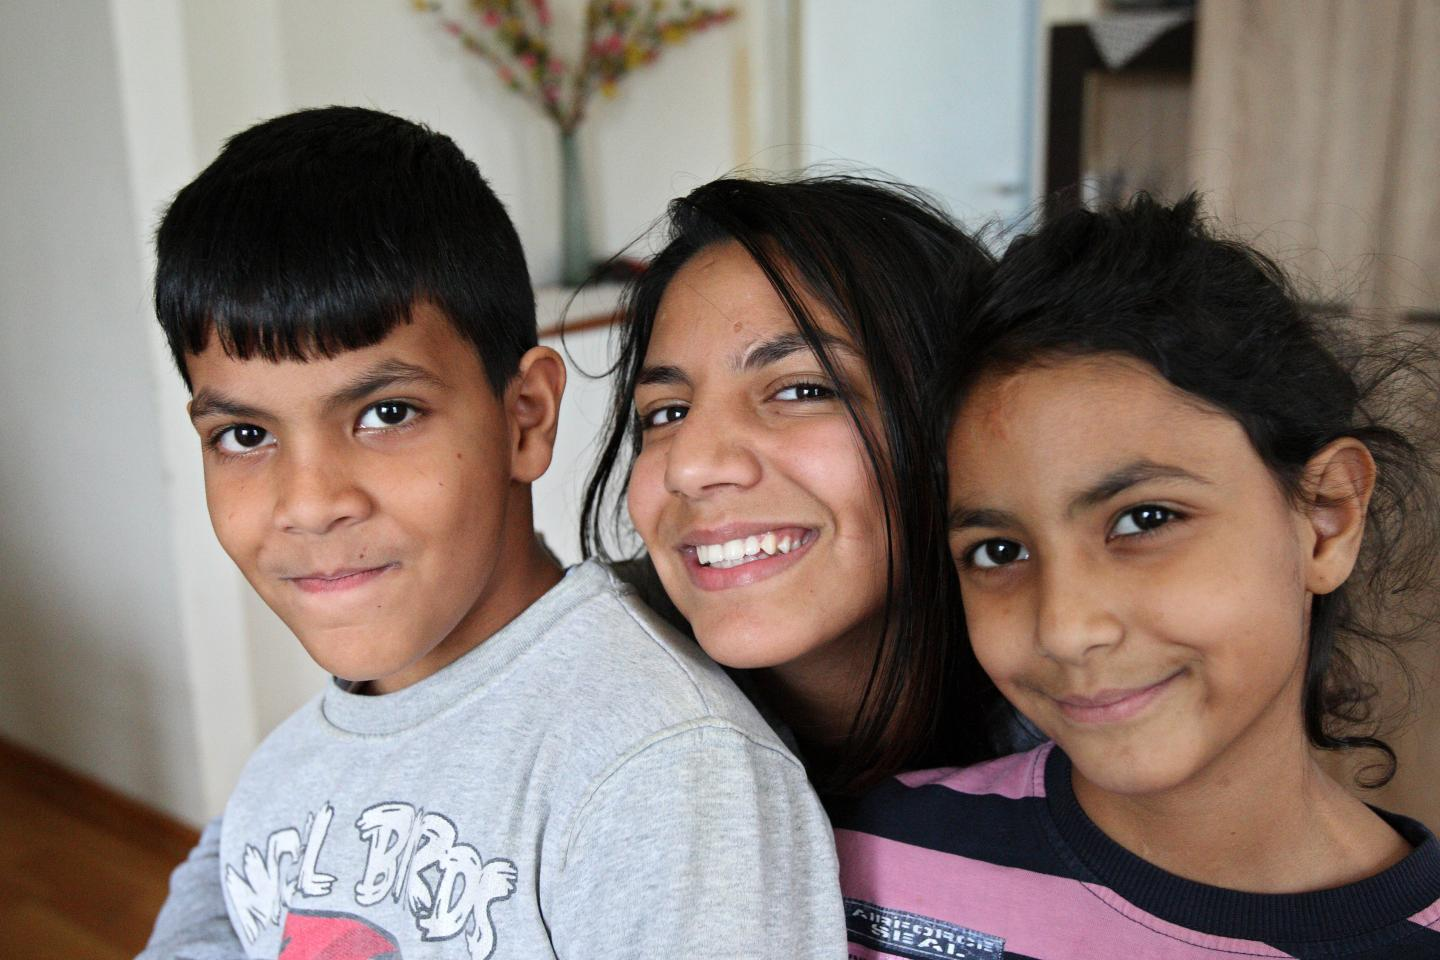 Roma children smiling